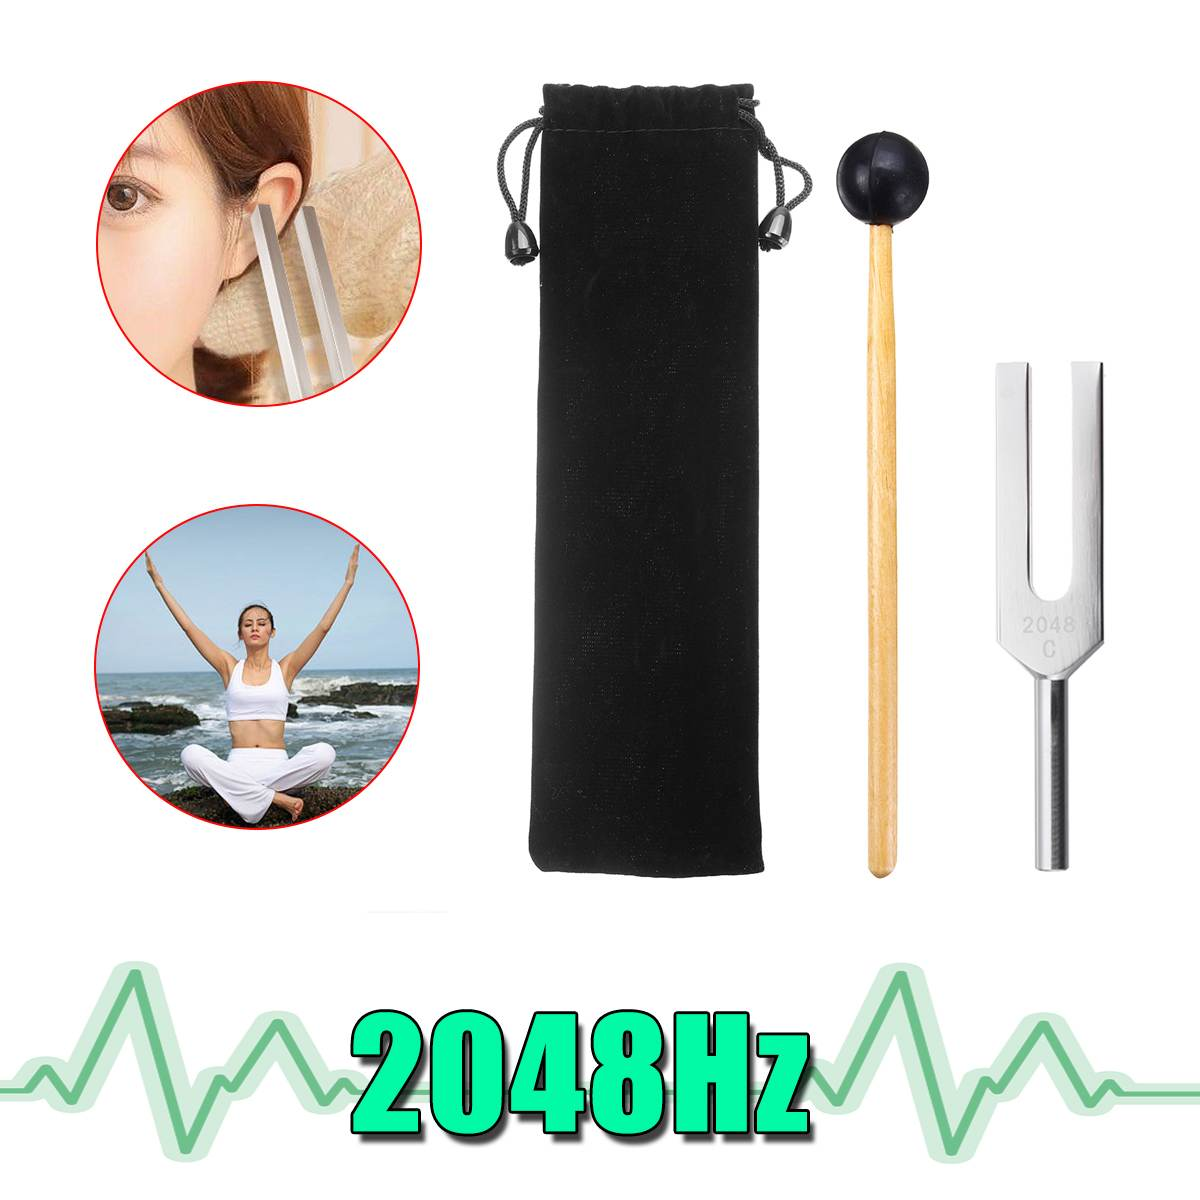 2048Hz Aluminum Medical Tuning Fork+Mallet Chakra Hammer Ball Diagnostic Nervous System Testing Tuning Fork Health Care W/Bag